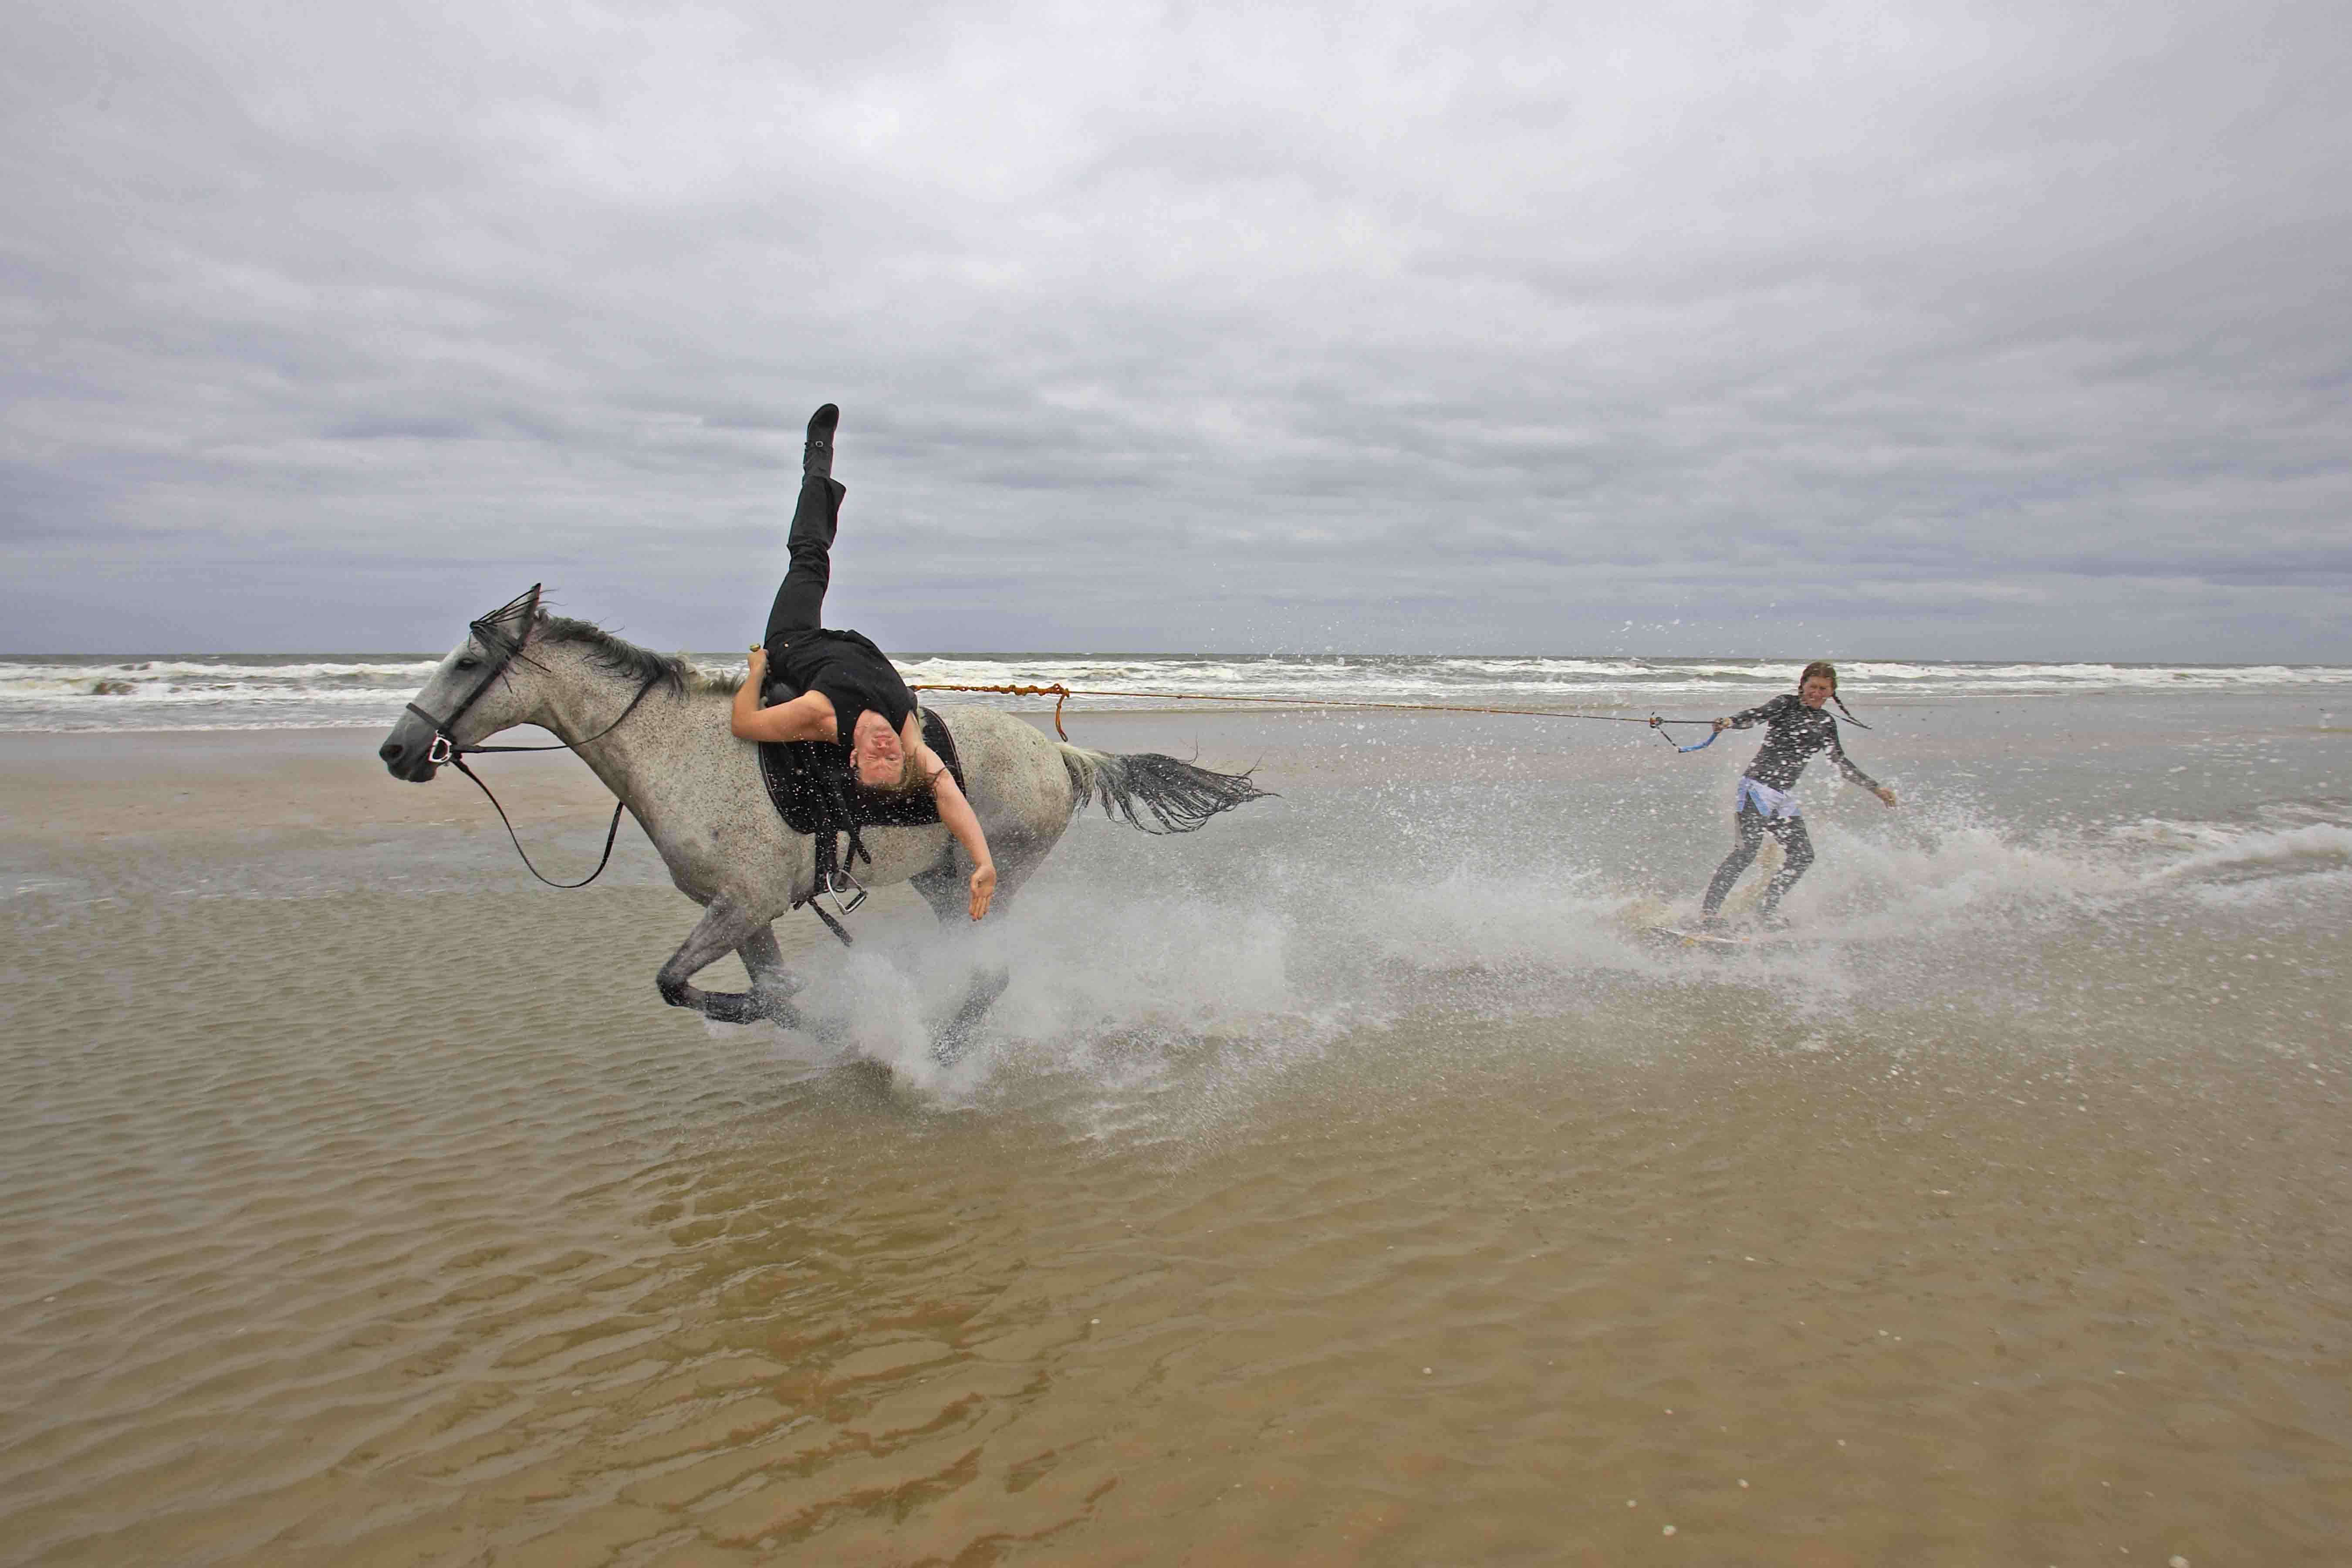 extreme horse surfing and trick riding